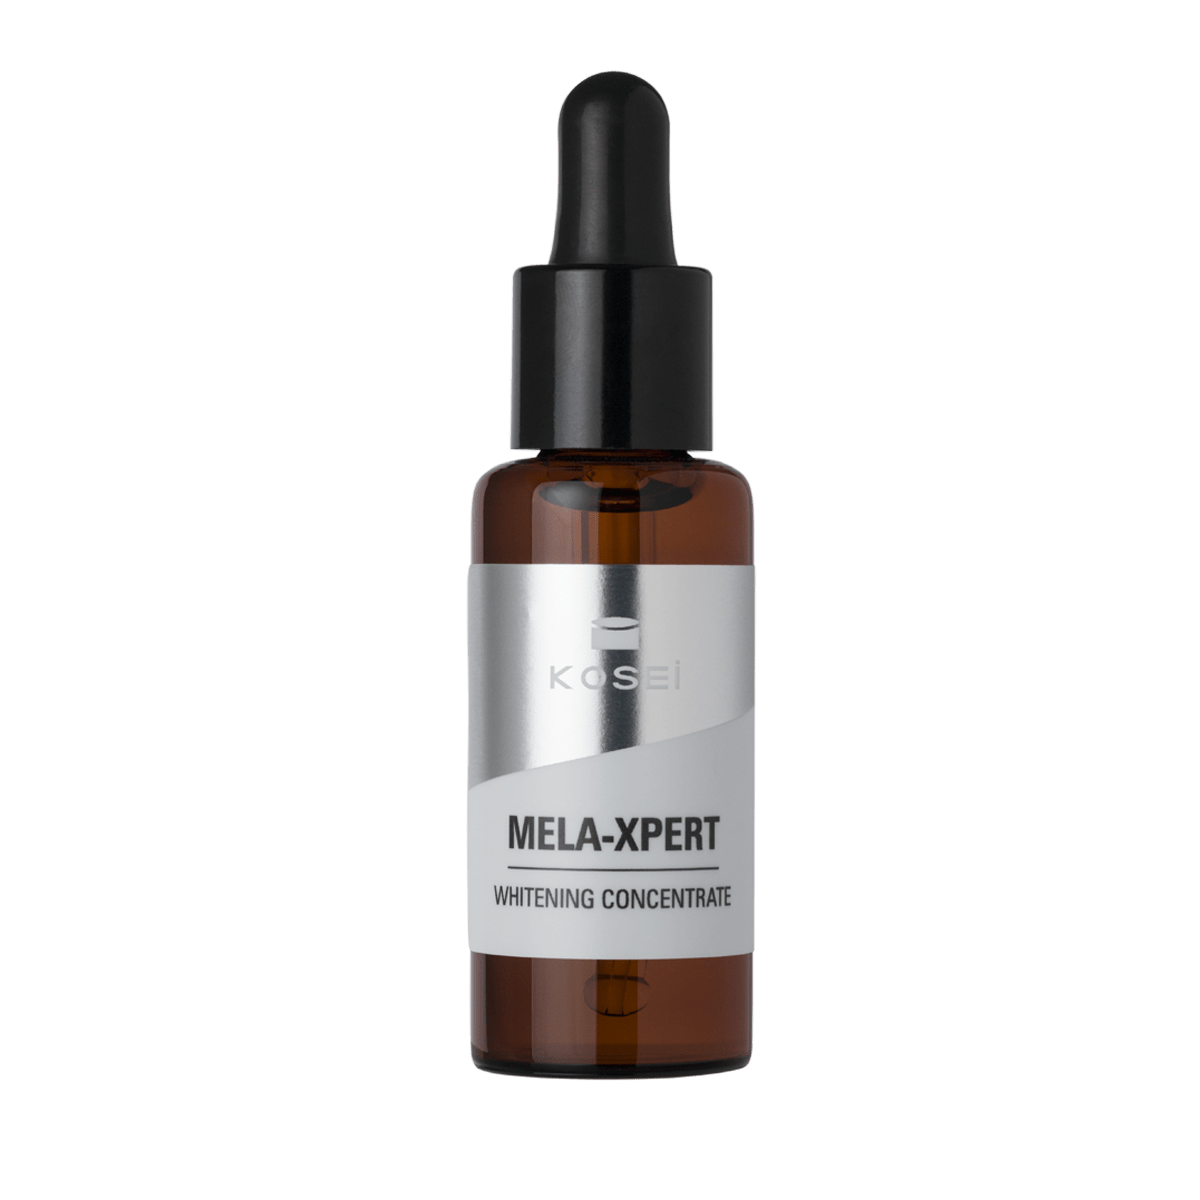 MELA-XPERT whitening concentrate. Serum antimanchas